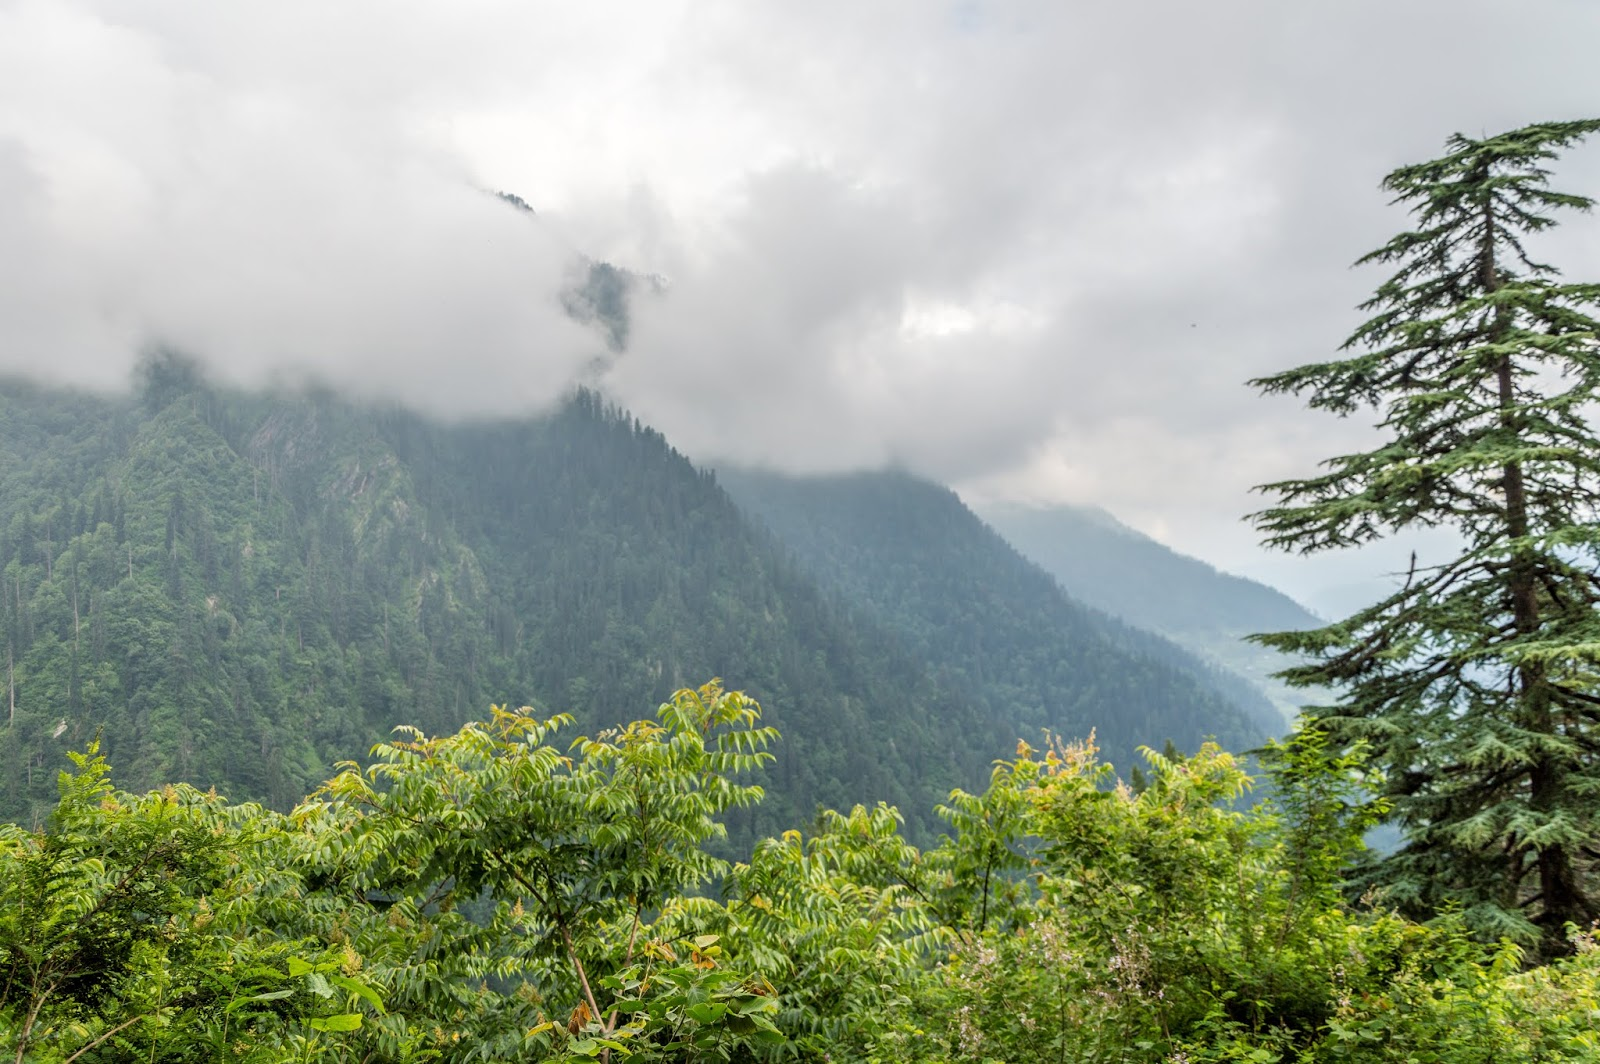 Lush green forests and clouds around the peak mystic view during Srikhand mahadev Yatra